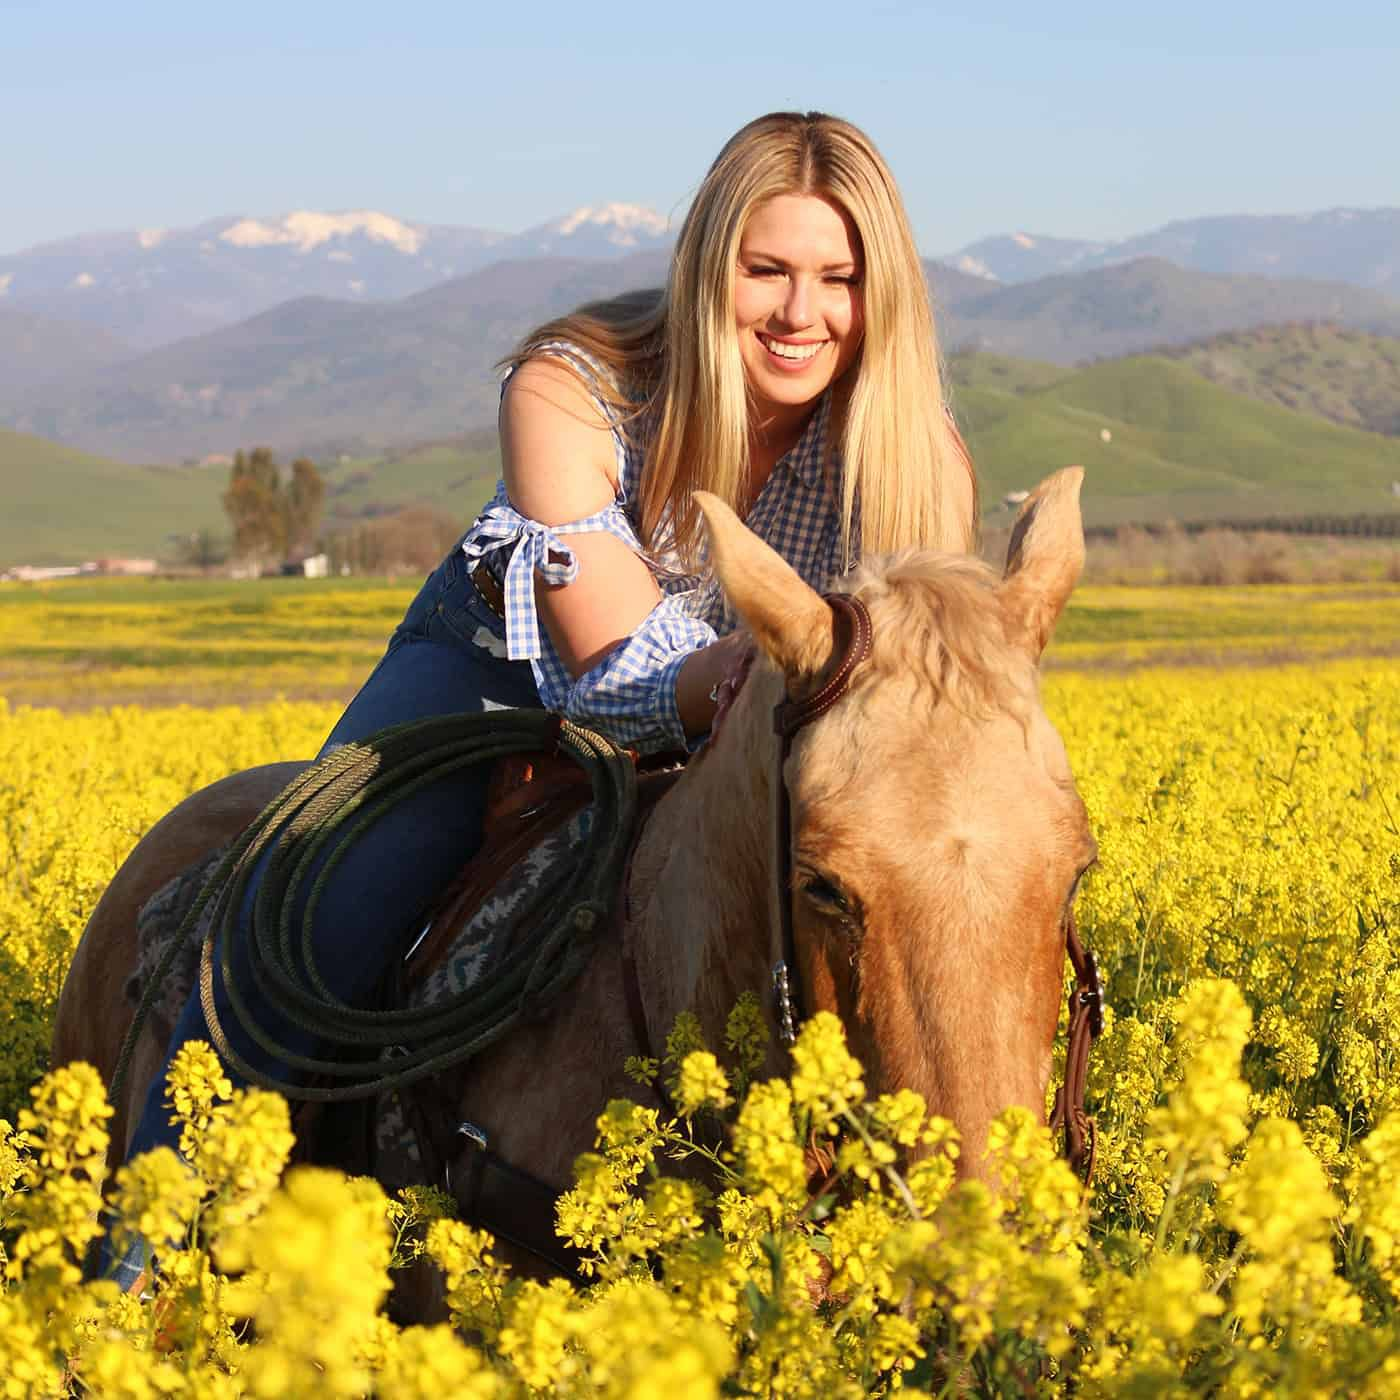 Amy Witt is a Cowgirl with heart!